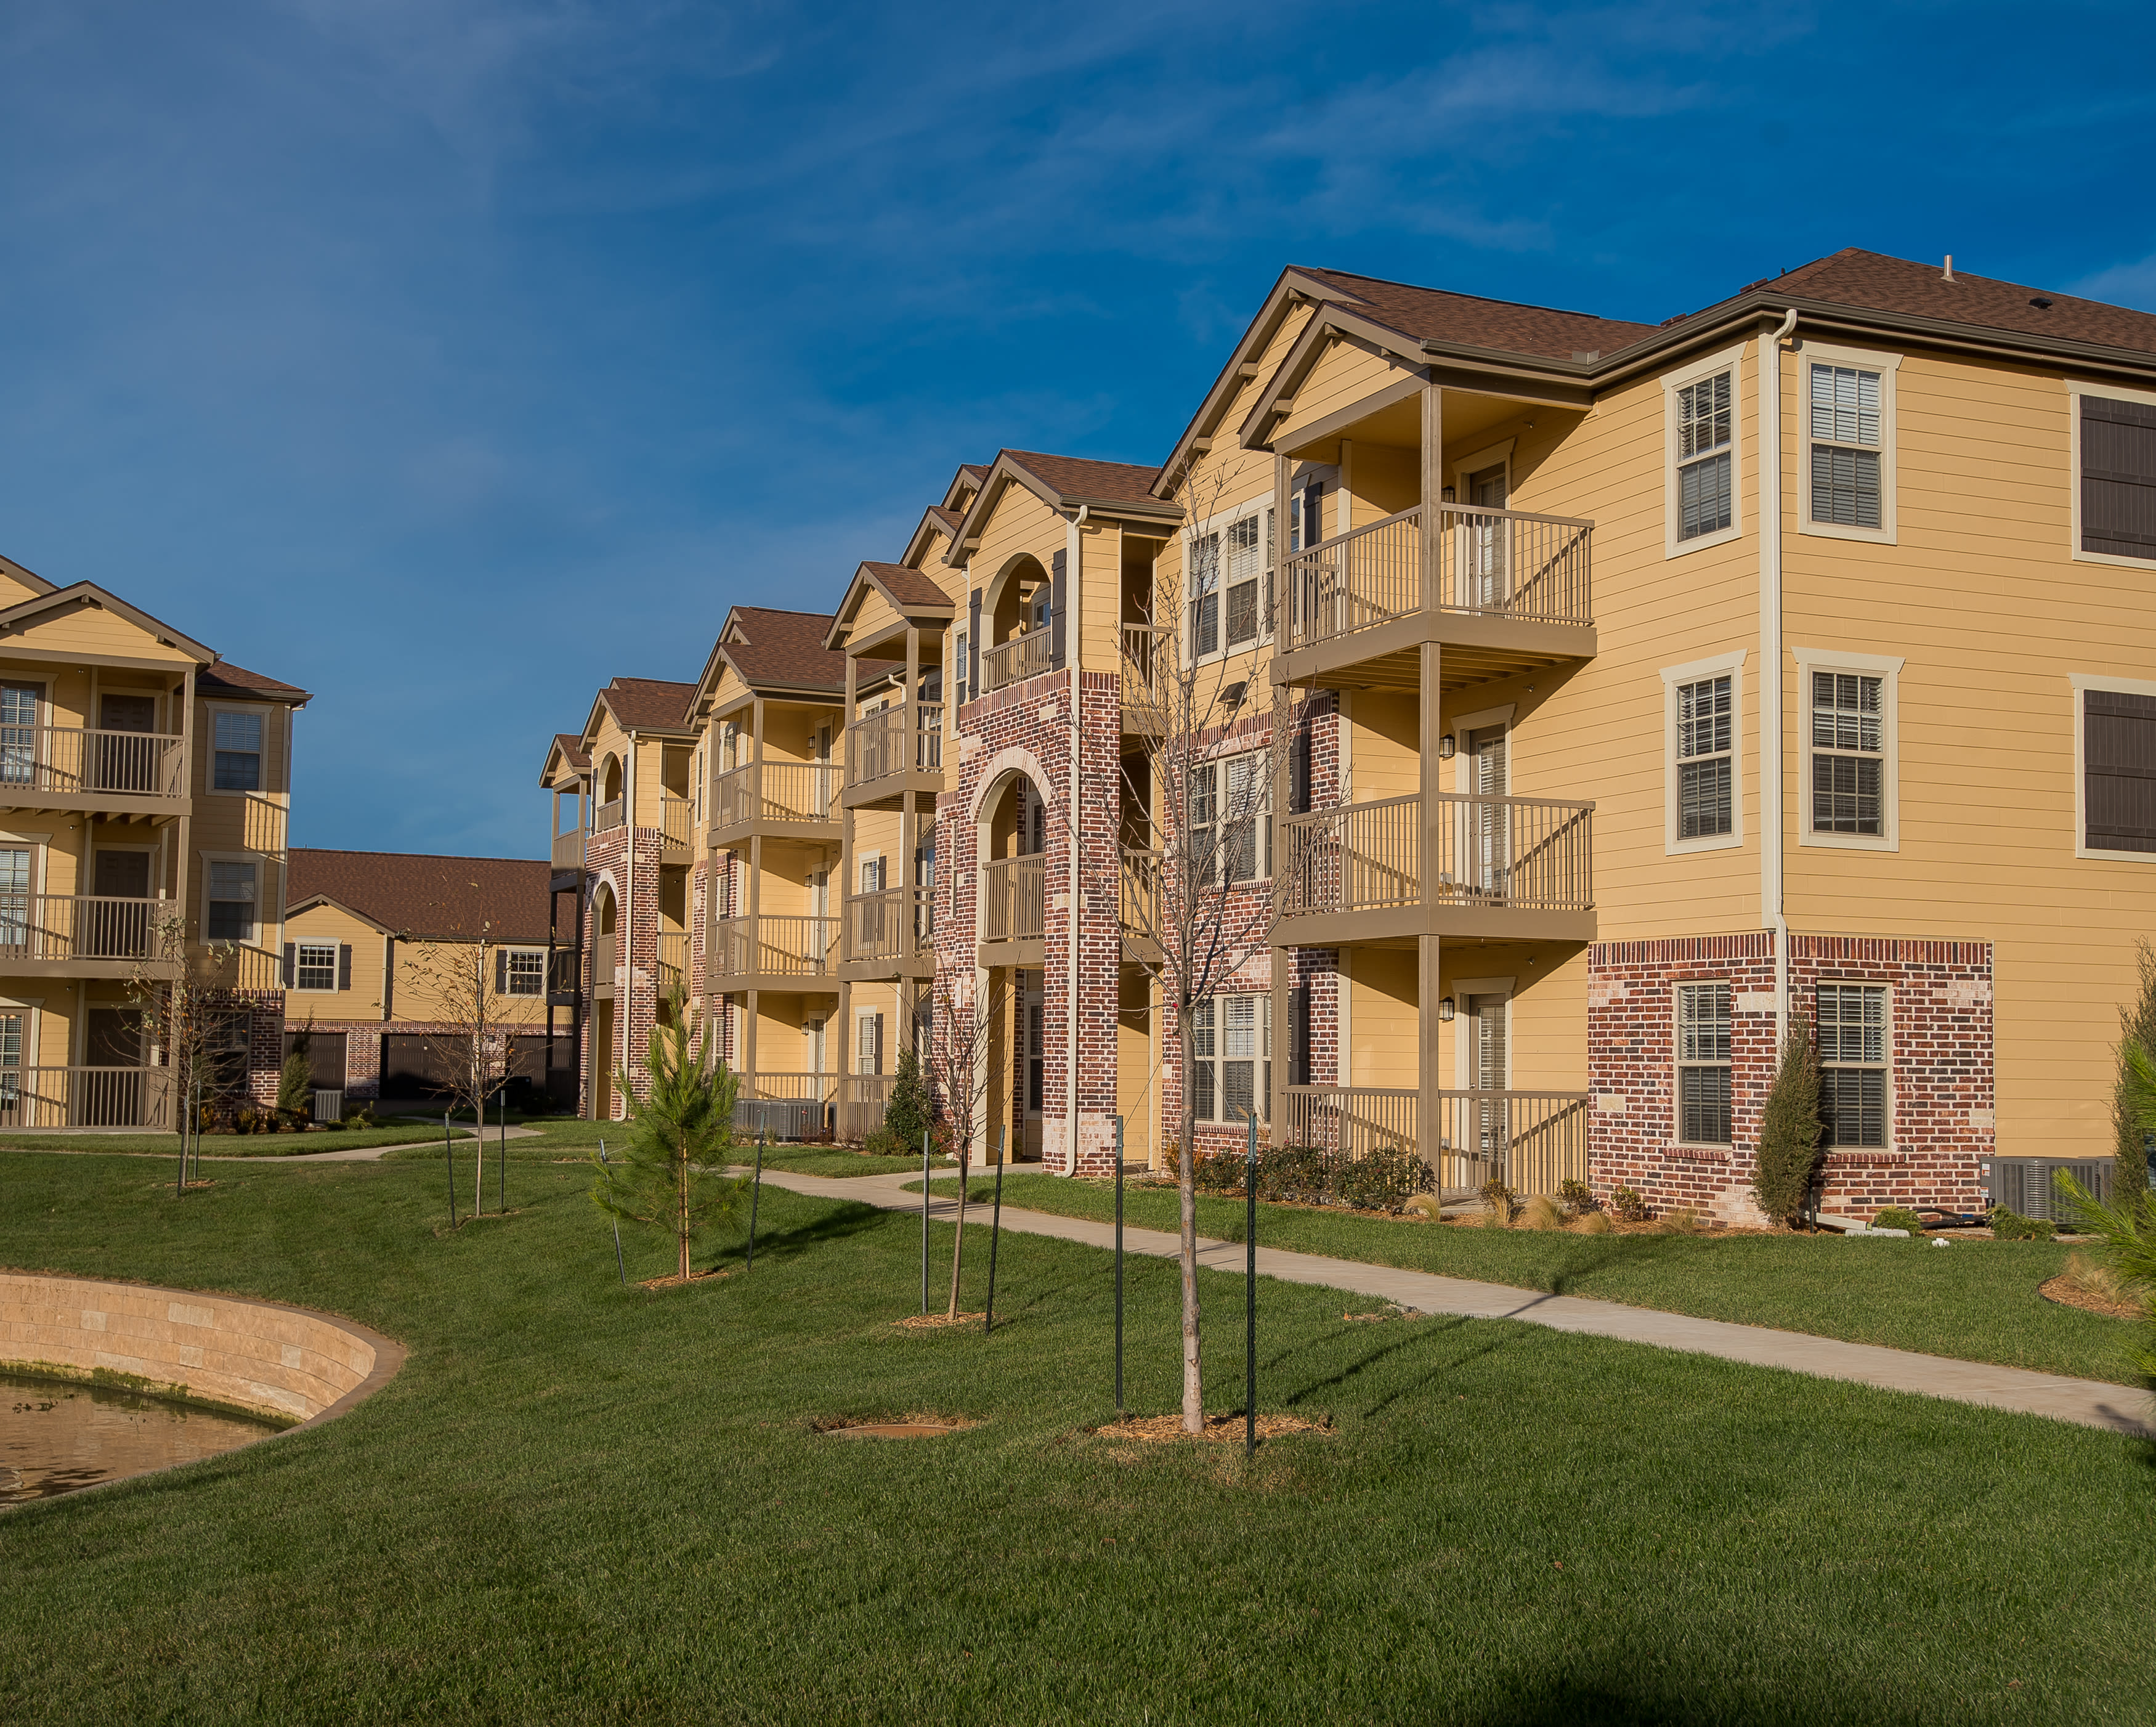 Green areas at Portico at Friars Creek Apartments in Temple, Texas